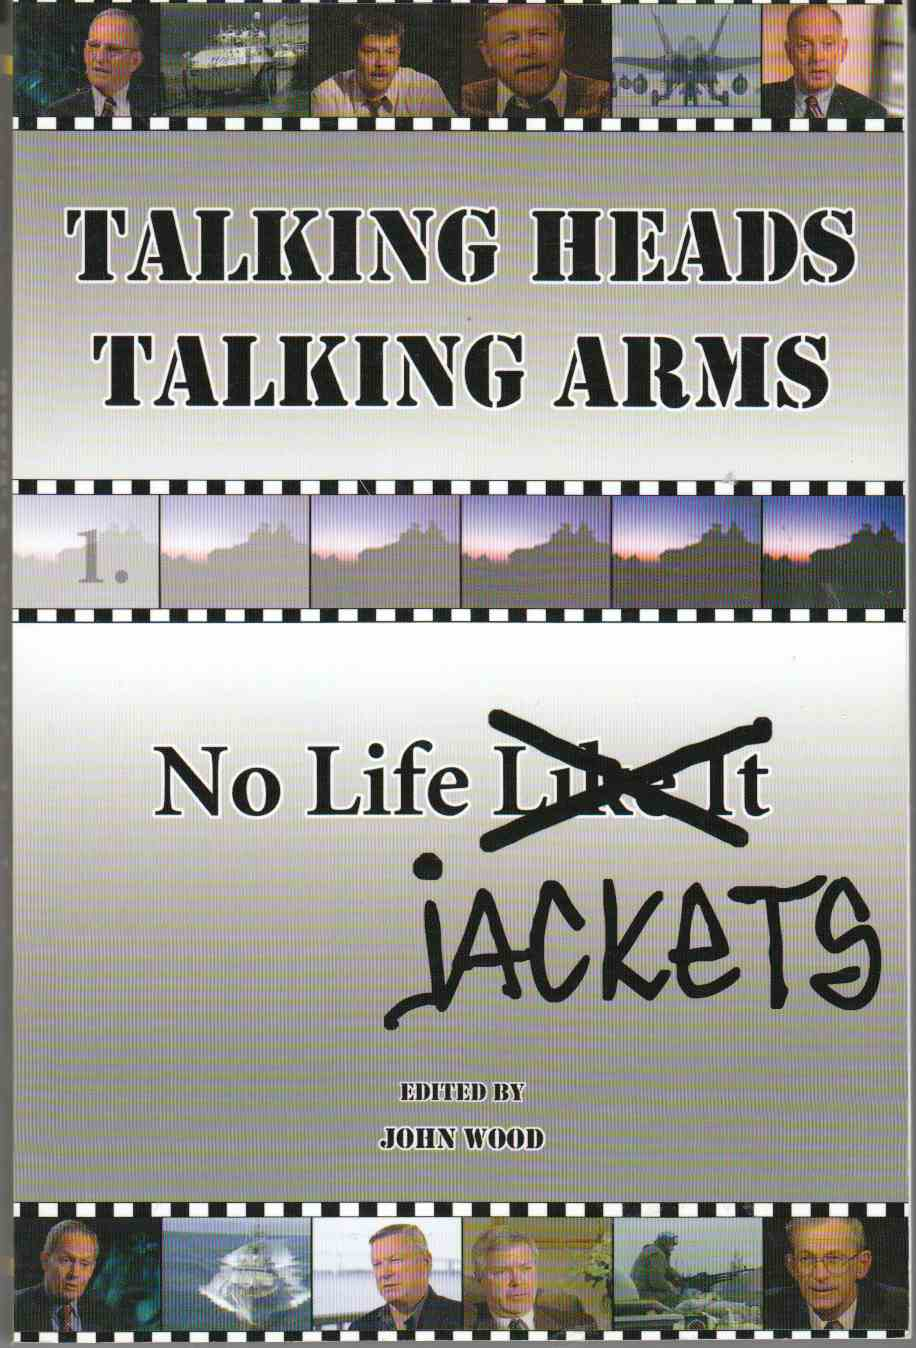 Image for Talking Heads Talking Arms Volume 1: No Life Jackets